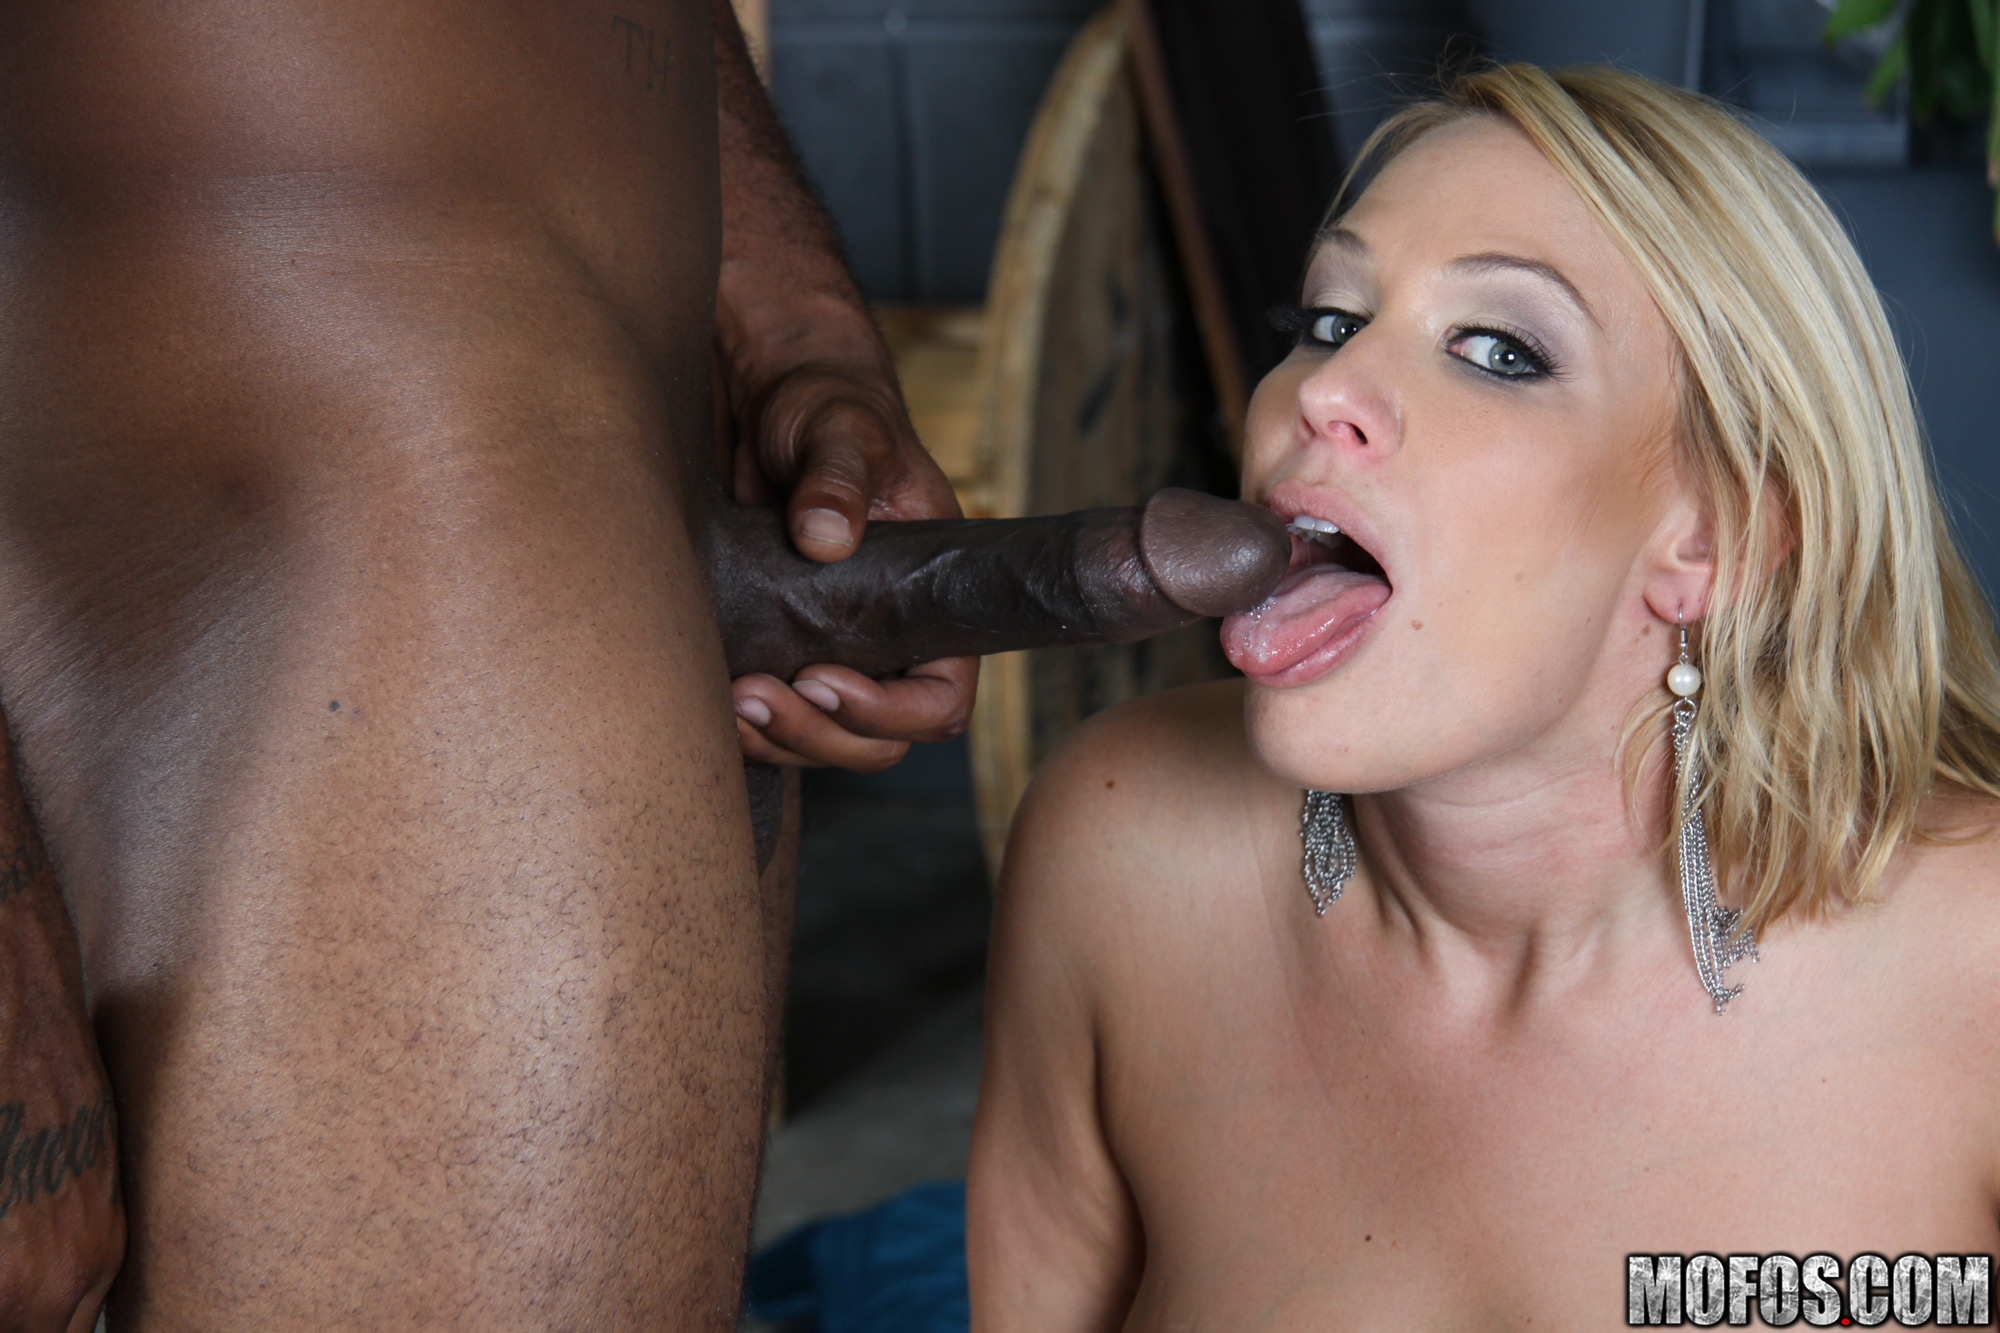 Interracial cum swollowing